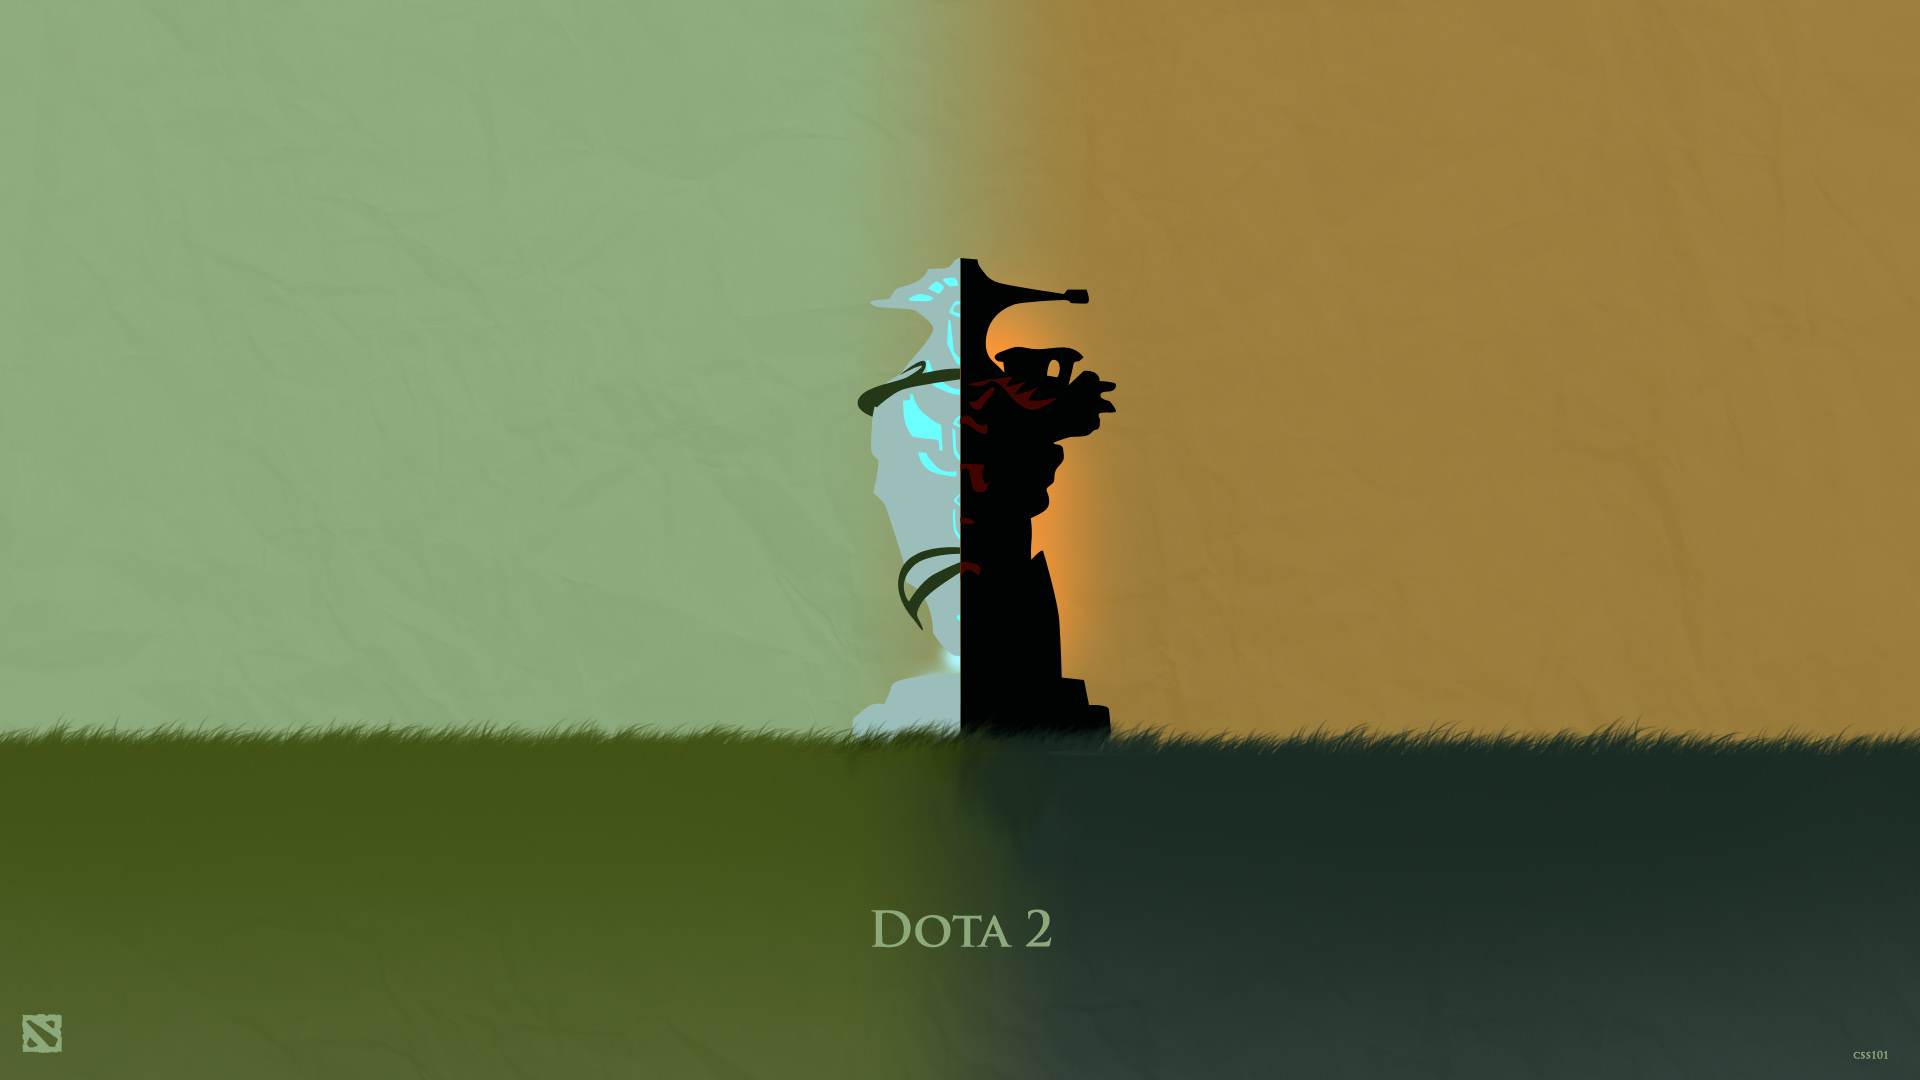 Gamers Quotes Wallpaper 50 Beautiful Dota 2 Posters Amp Heroes Silhouette Hd Wallpapers